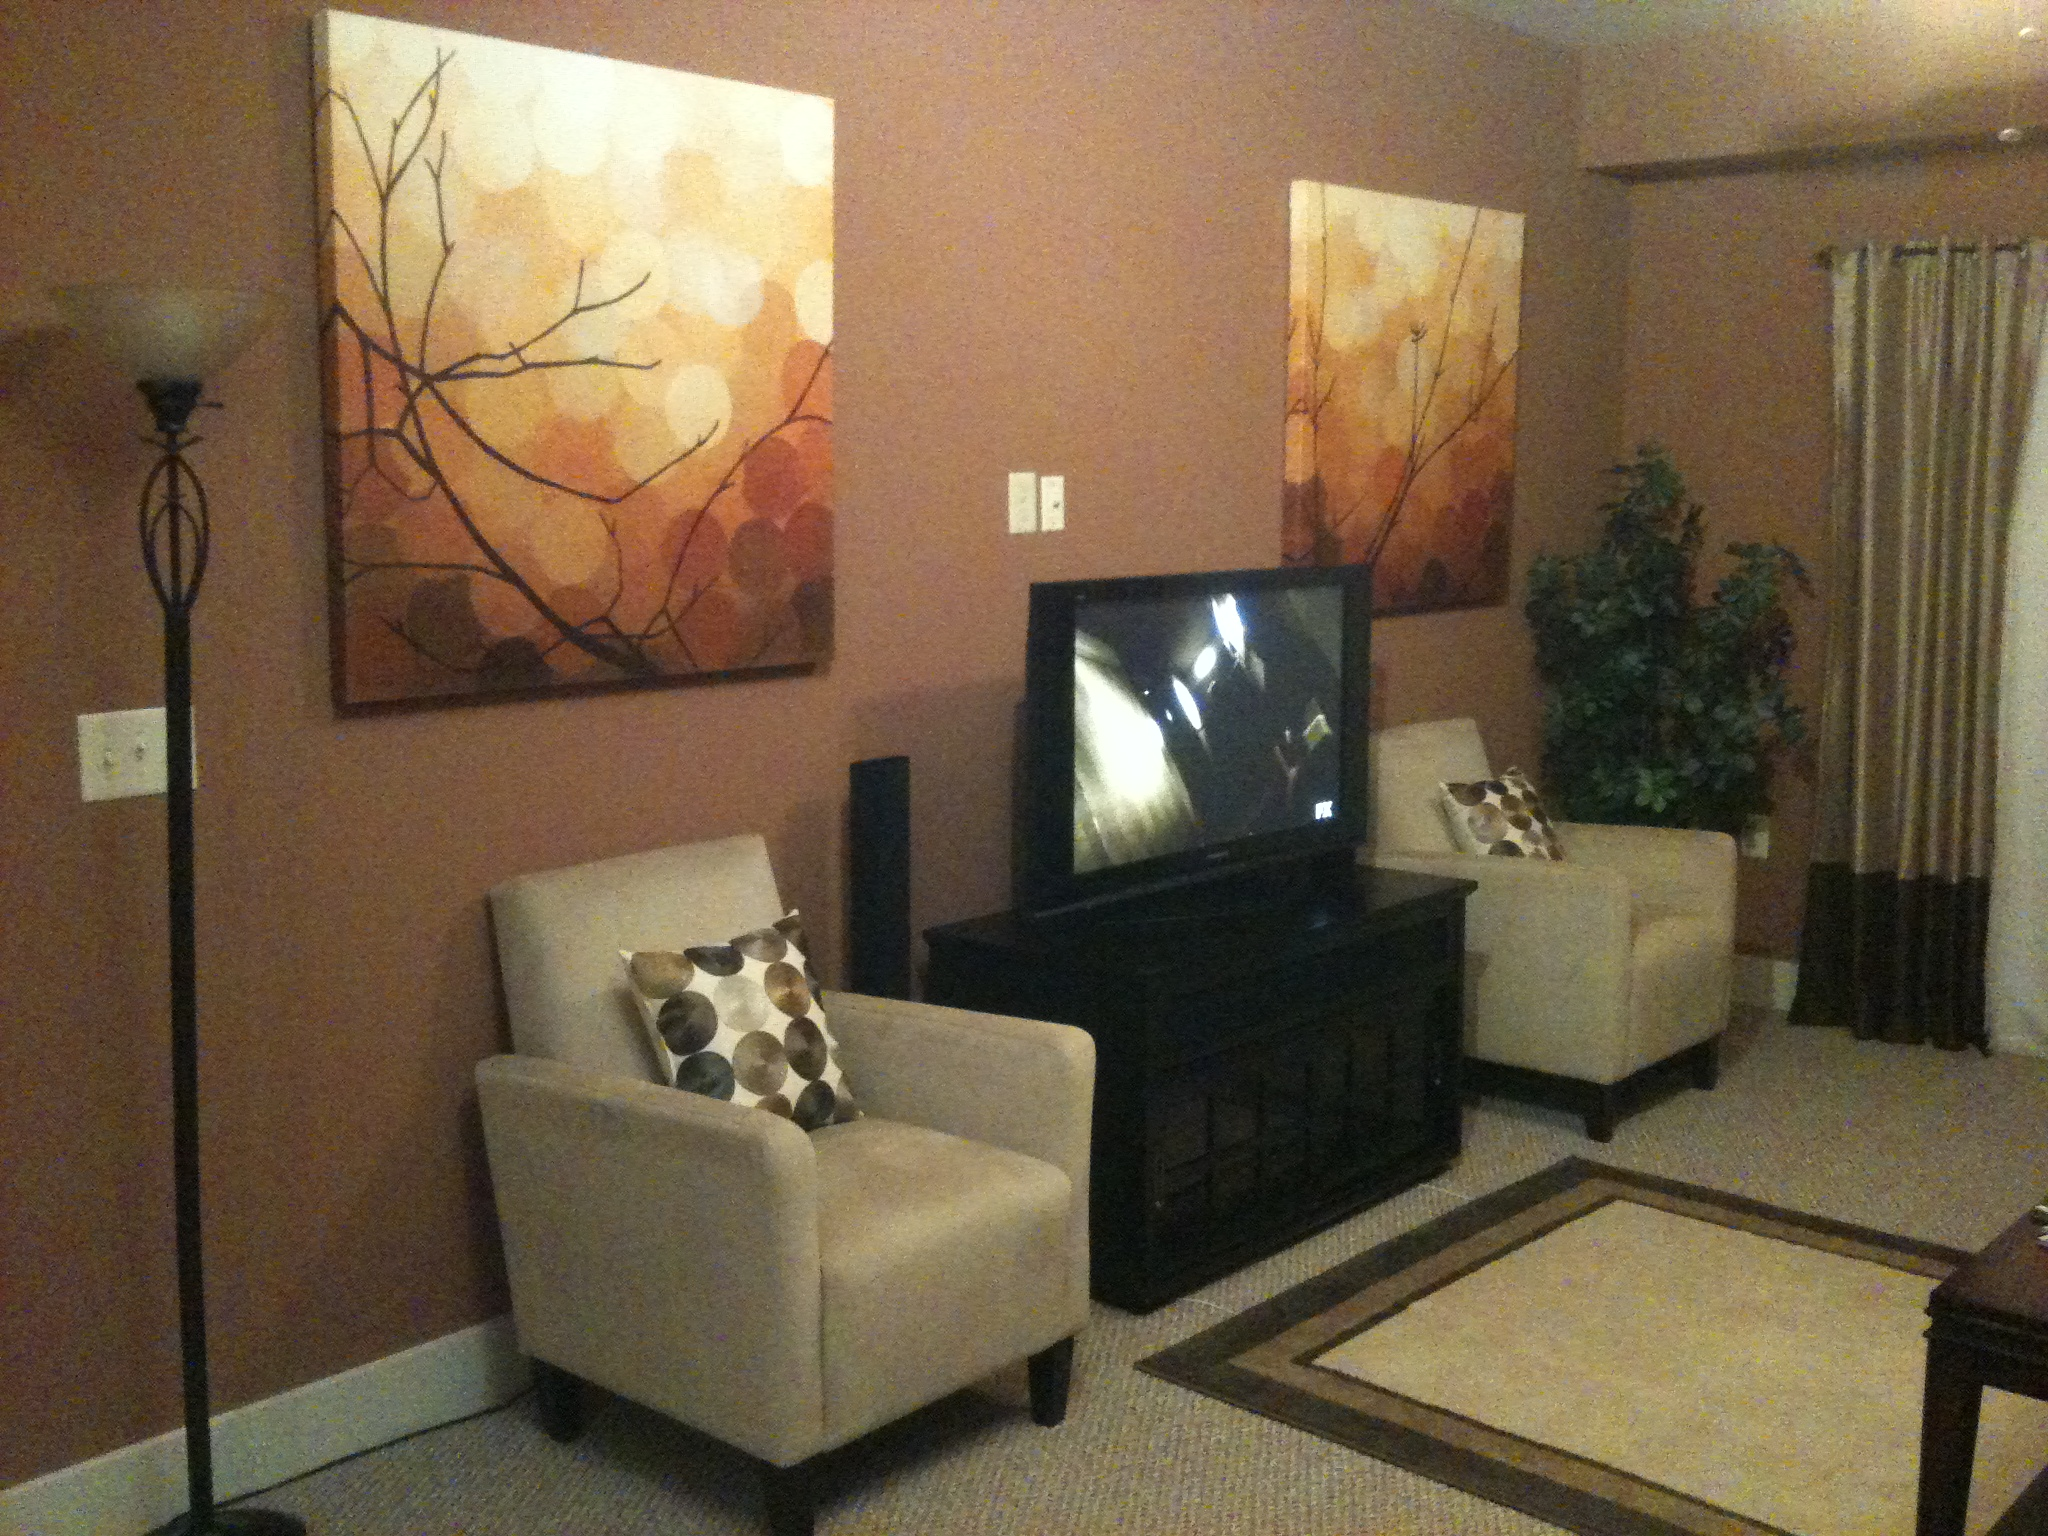 Home Design Living Room Paint Colors For Living Room Walls. Home Decor Ideas For Living Room India. Corner Units For Living Room. Slipcovered Living Room Chairs. The Dump Living Room Sets. Dark Brown Carpet Living Room. Small Tables For Living Room. Modern Apartment Living Room Ideas. Green Living Room Walls